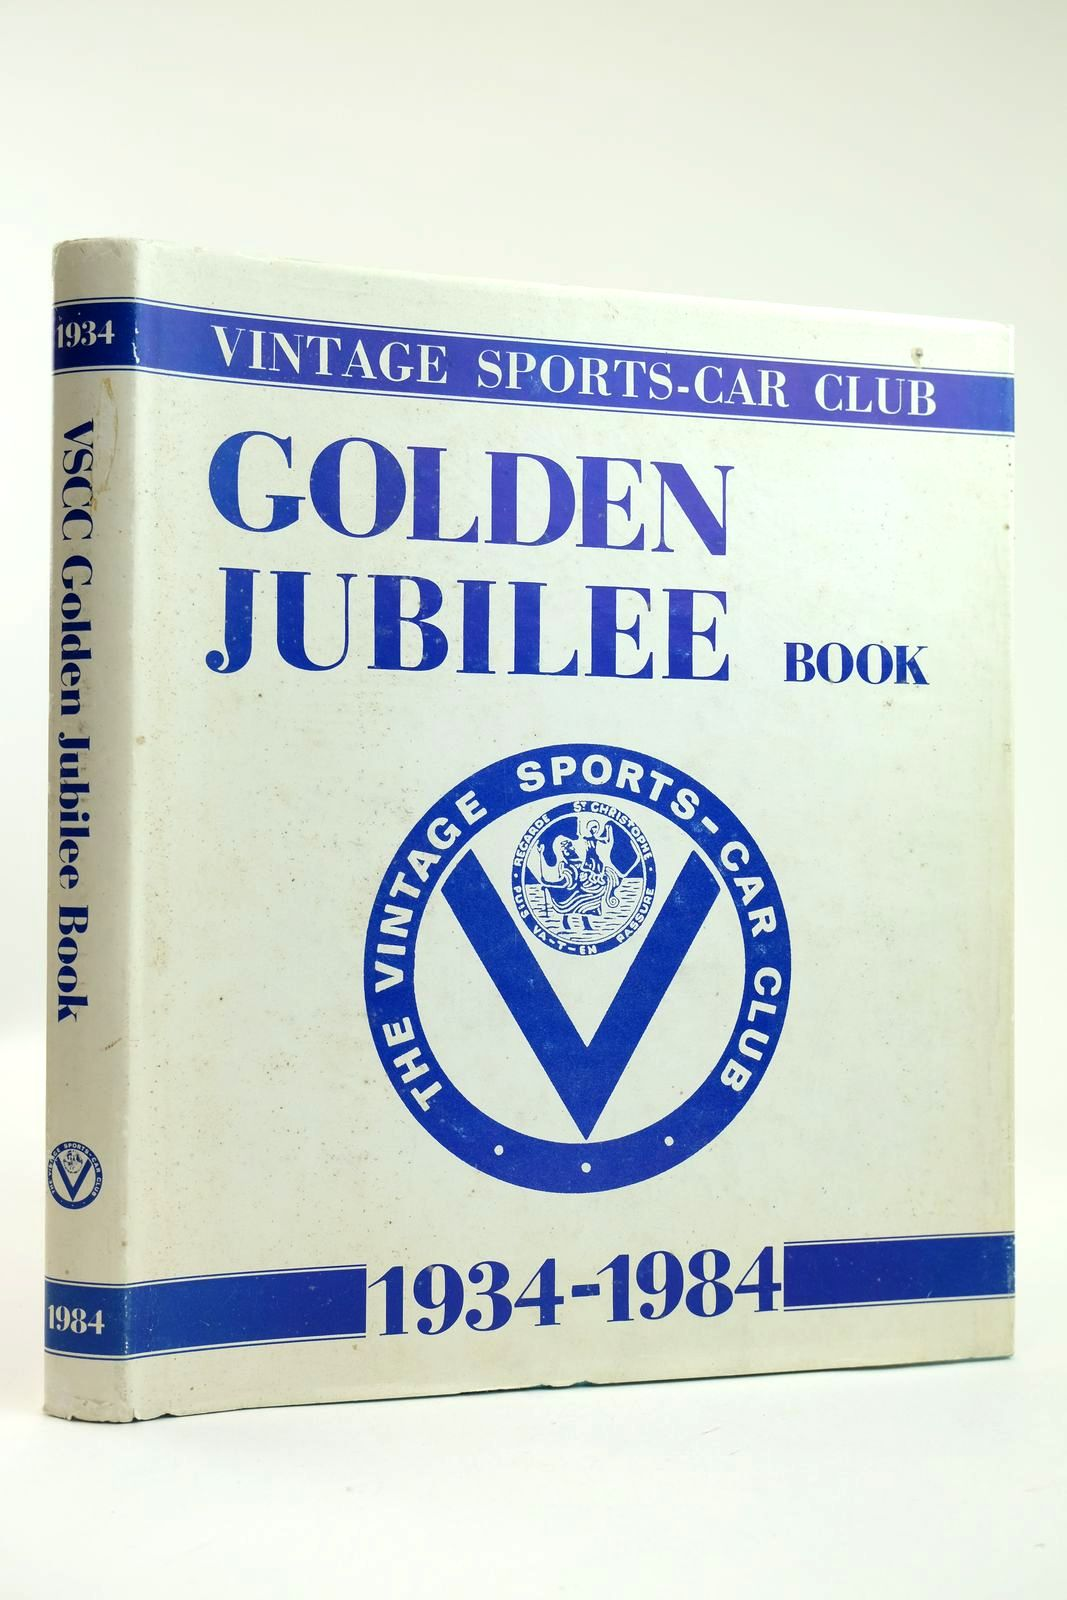 Photo of THE VINTAGE SPORTS-CAR CLUB GOLDEN JUBILEE BOOK 1934-1984 written by Hull, Peter